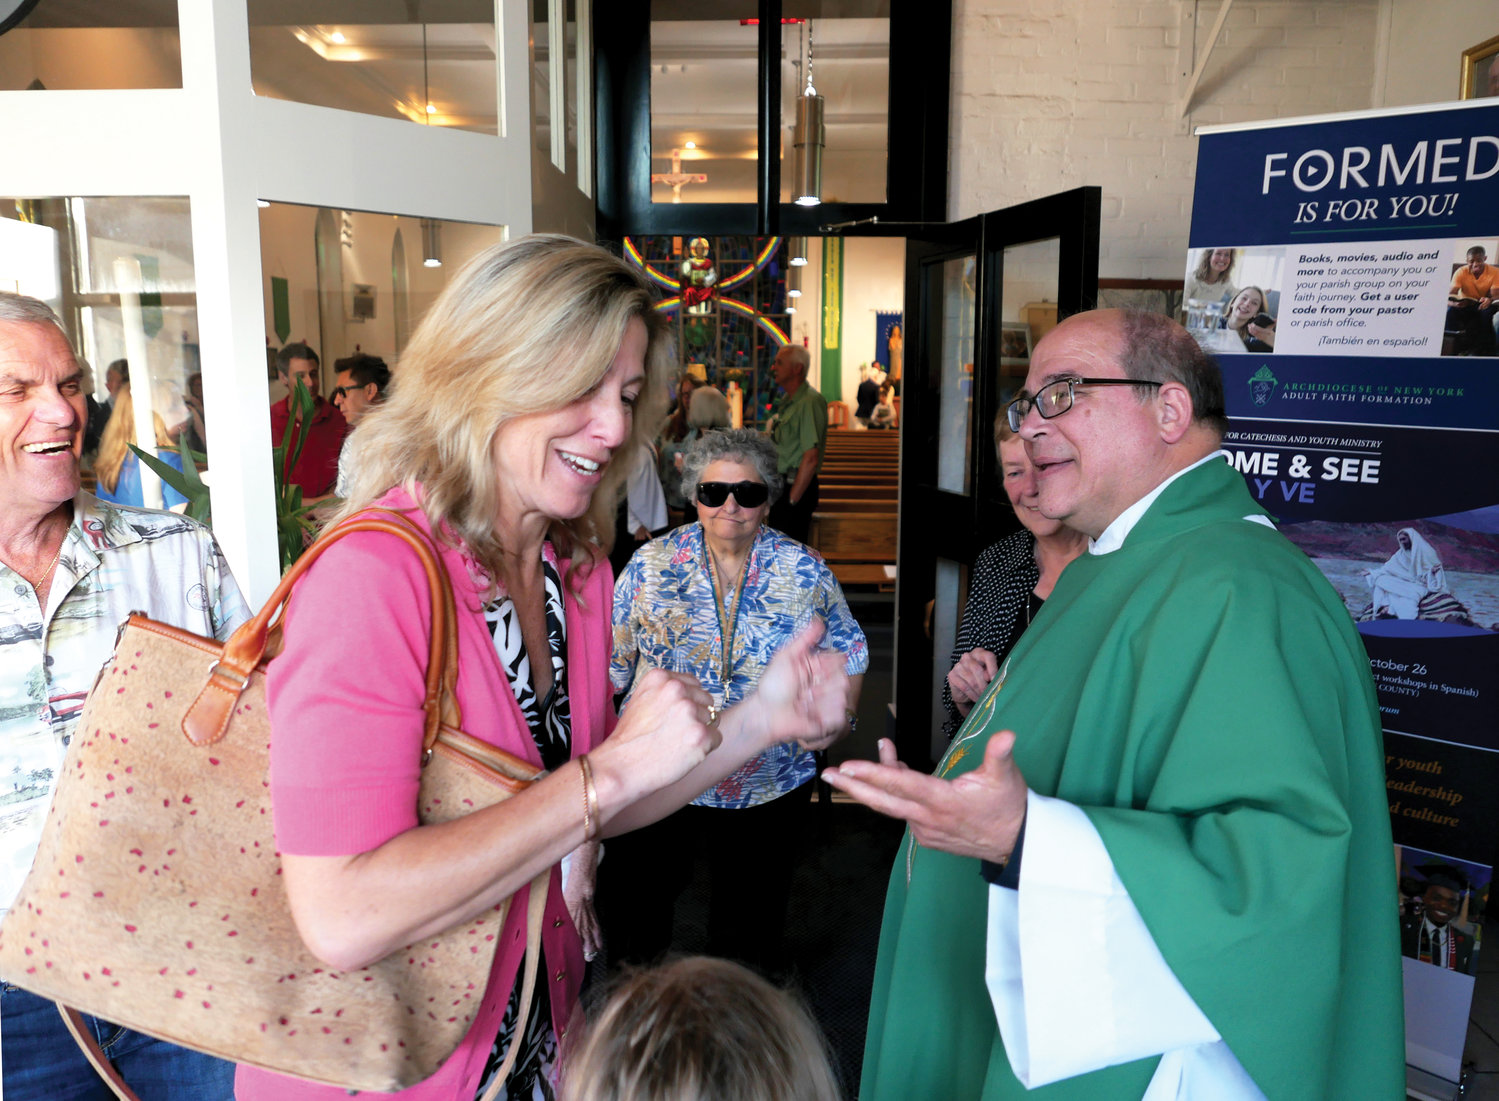 Father Mike Palazzo, pastor, greets parishioners after Cardinal Dolan's Mass celebrating the 50th anniversary of Holy Name of Jesus parish in Otisville Sept. 21.